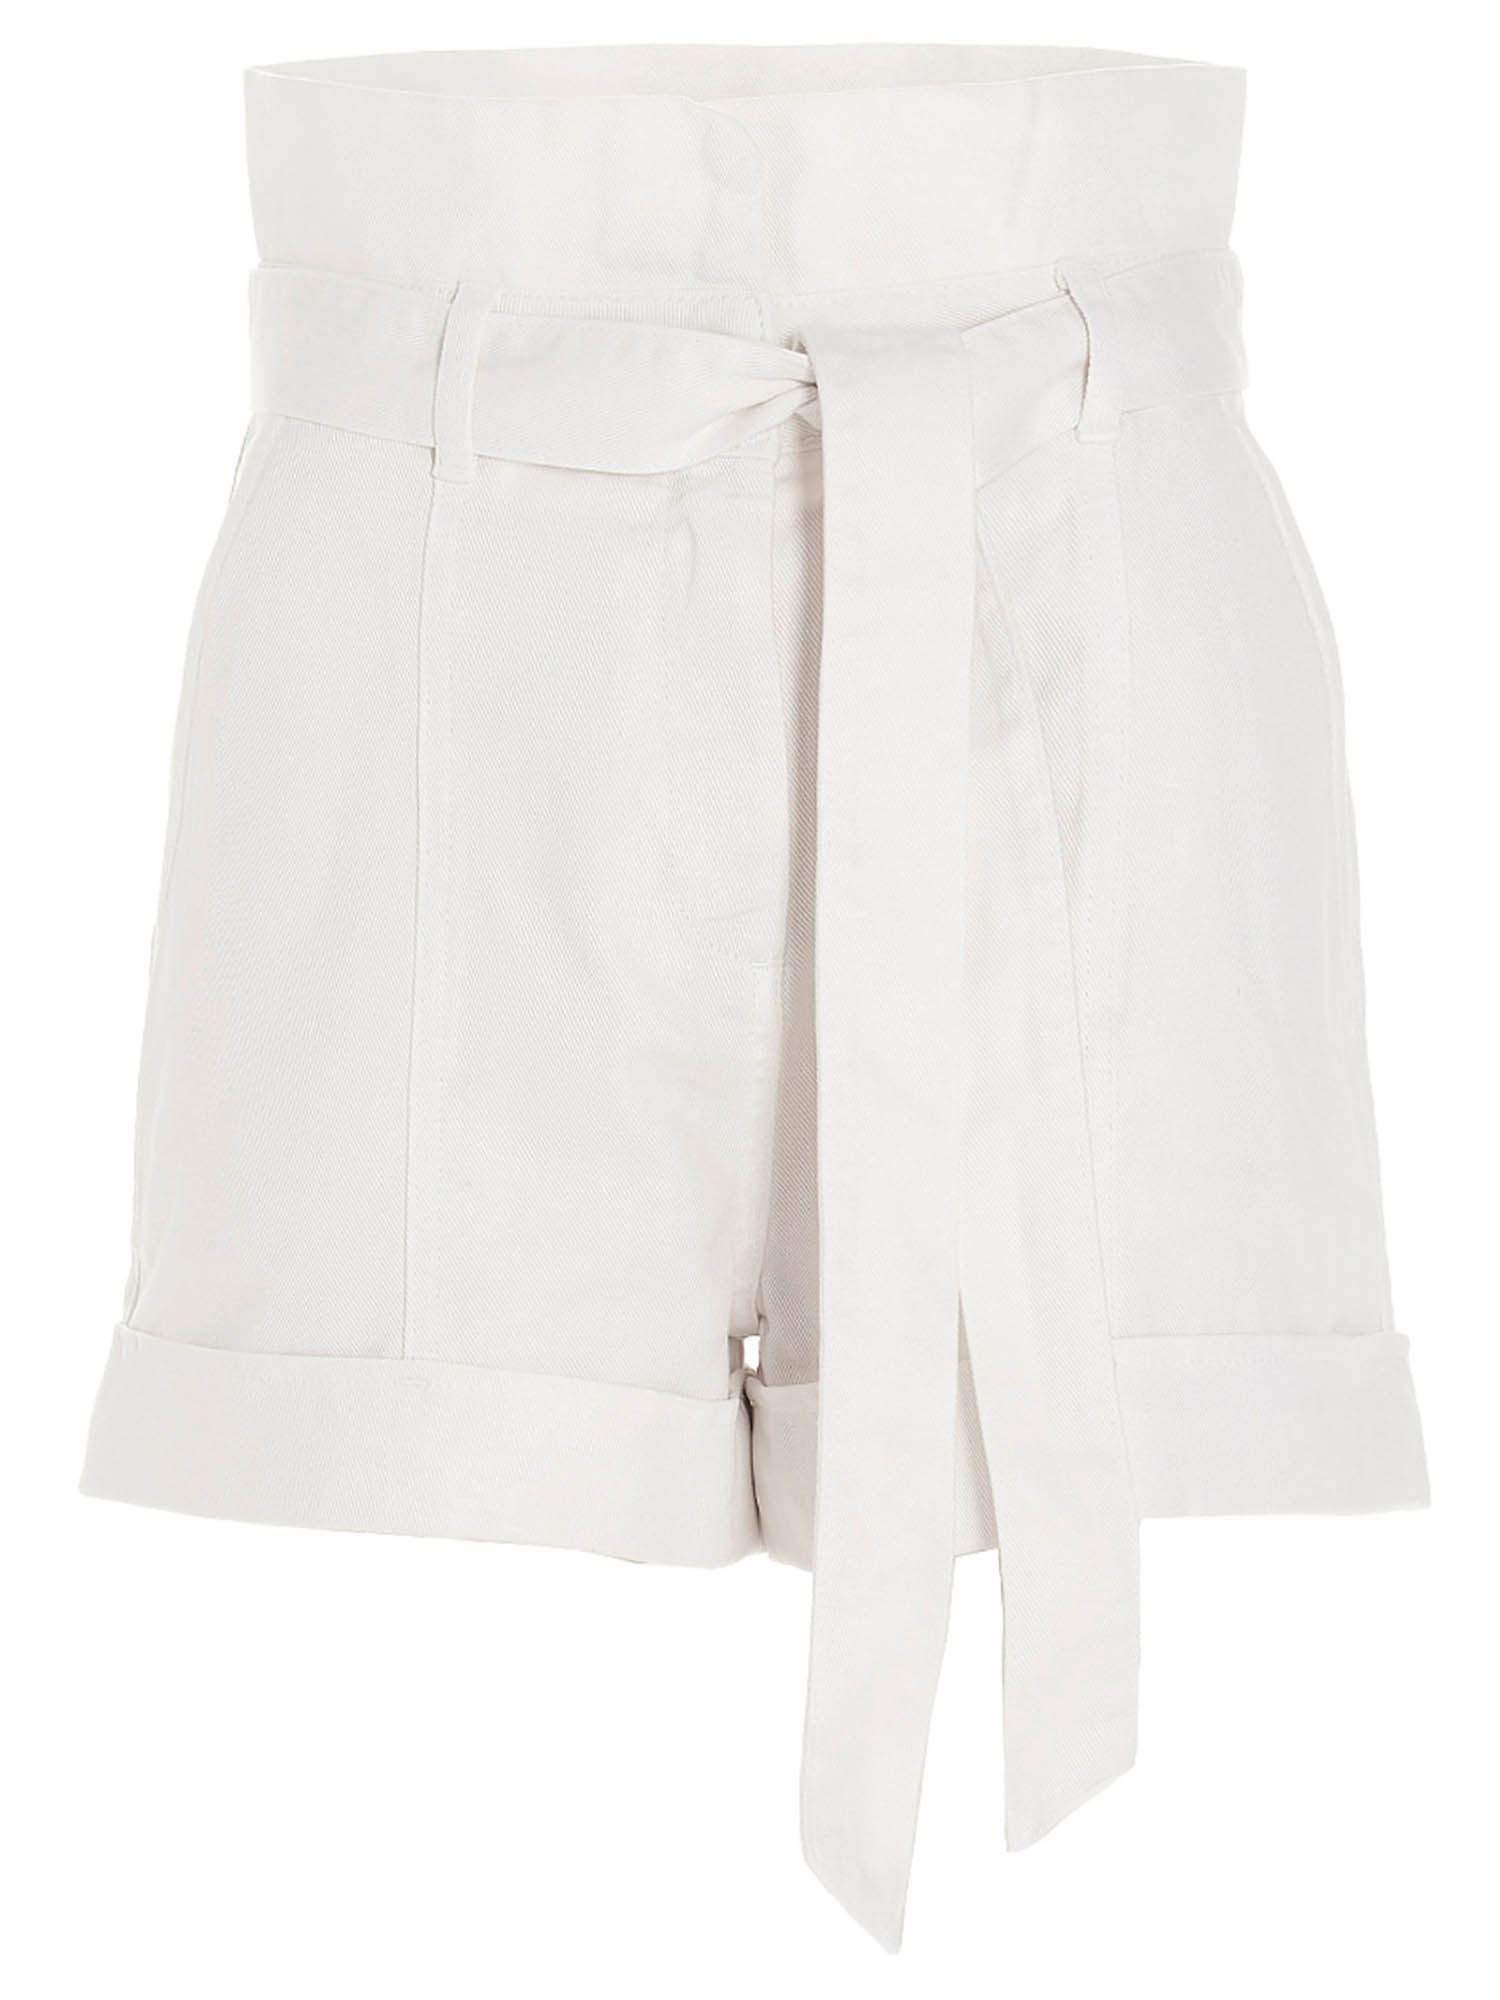 Twinset Shorts HIGH-WAISTED BERMUDA SHORTS IN WHITE